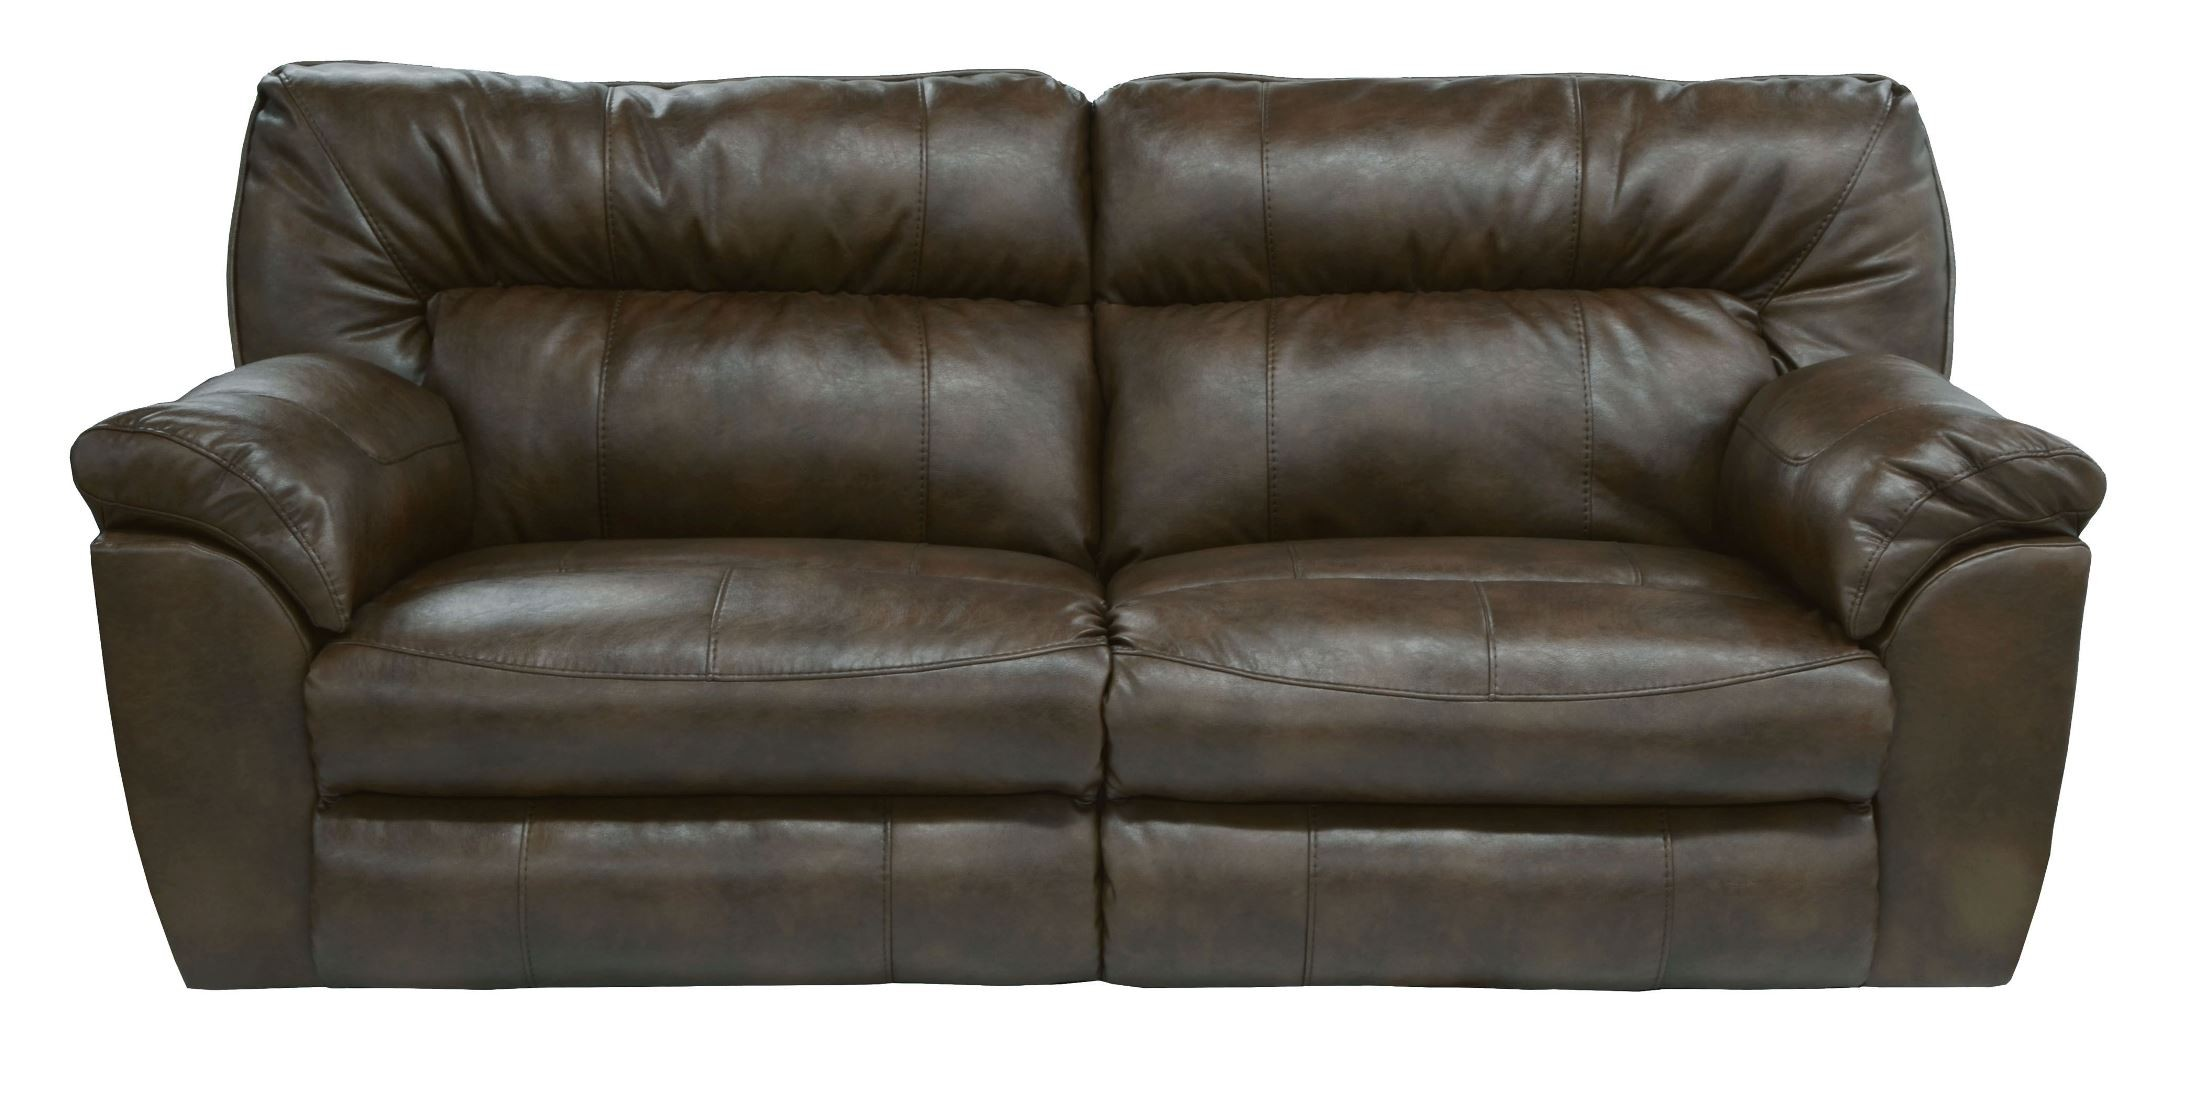 Nolan godiva power reclining sofa from catnapper for Catnapper cloud nine chaise recliner